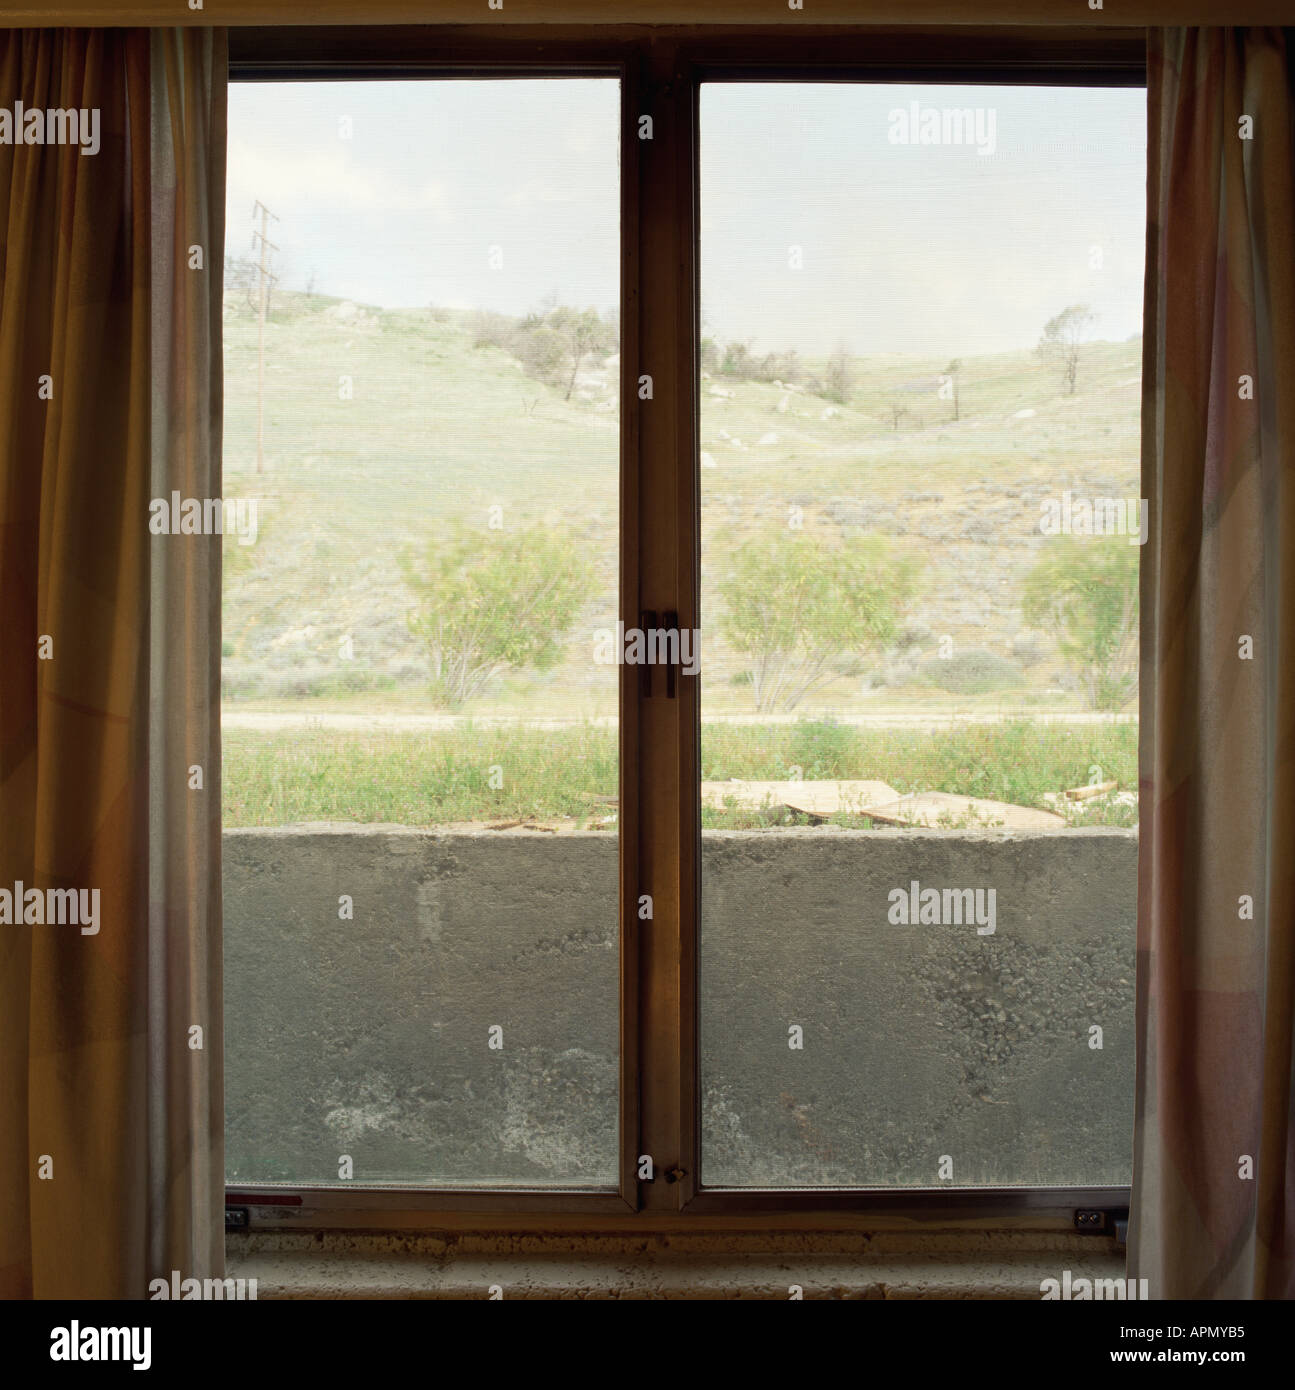 Desolate view through a window - Stock Image